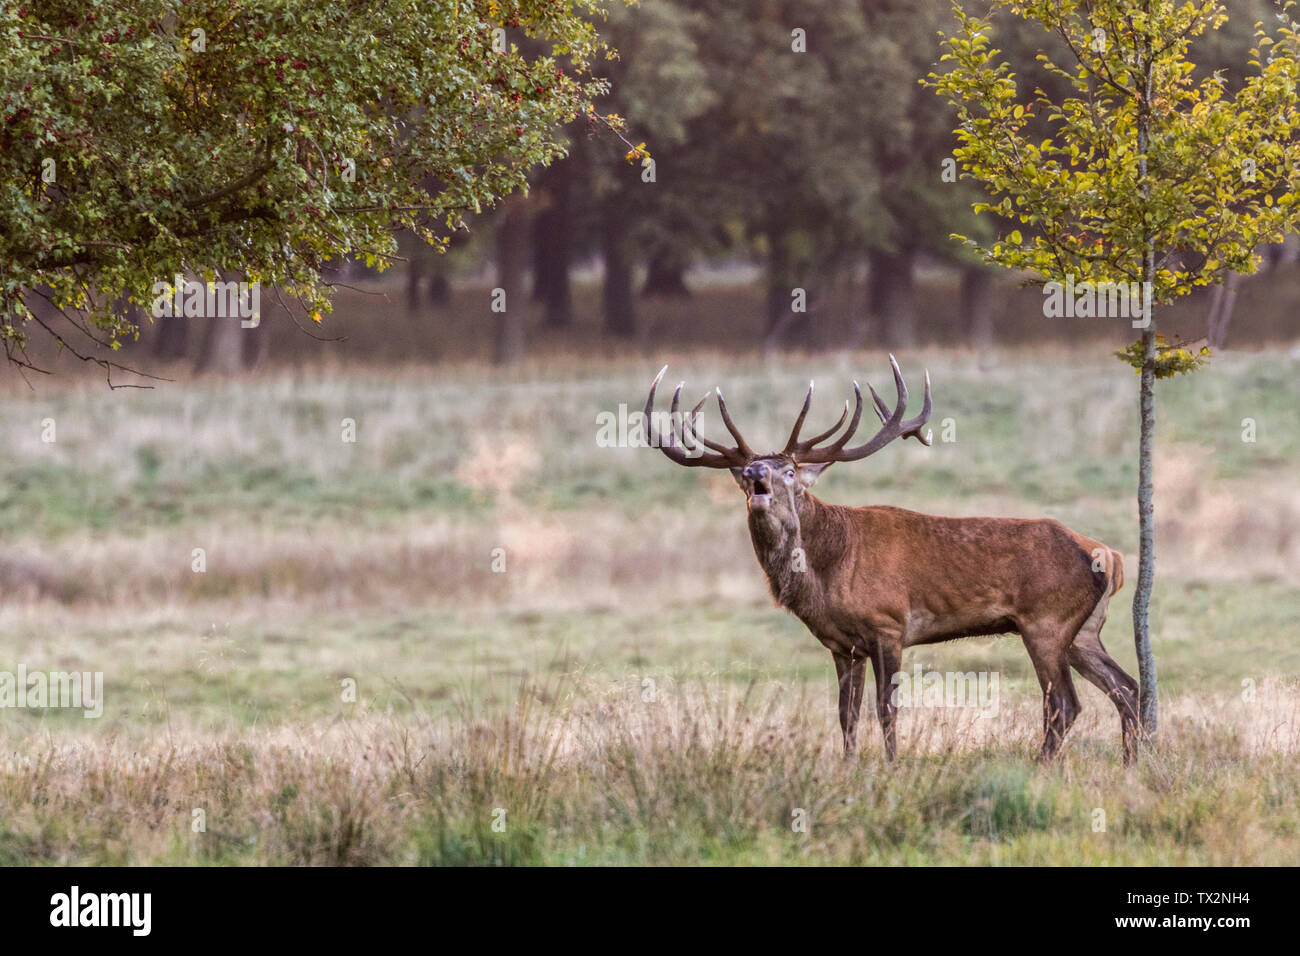 Stag during rutseason, bellowing, looking towards camera, on a field with beech trees, Jaegersborg dyrehaven, Denmark - Stock Image